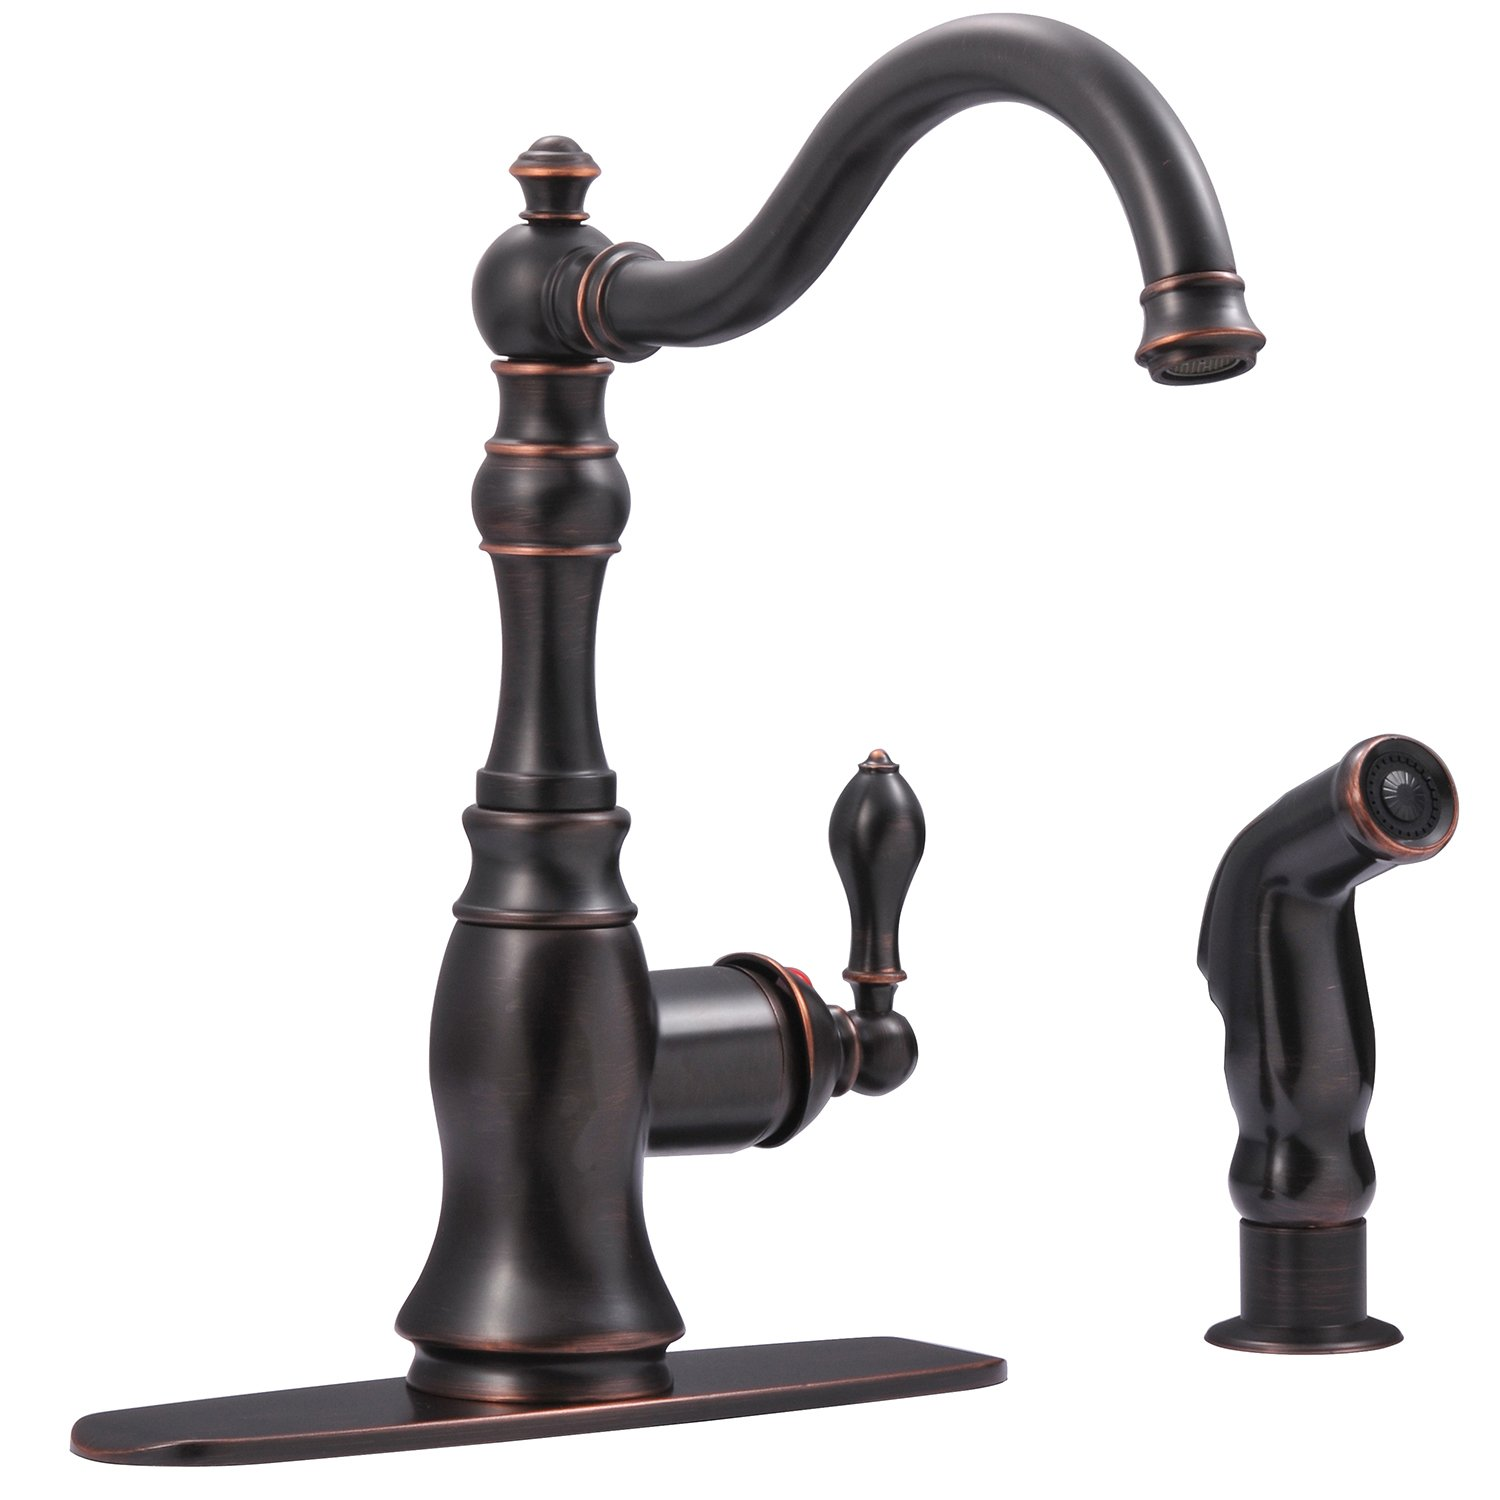 Ultra Faucets UF11245 Signature Collection Single-Handle Kitchen ...